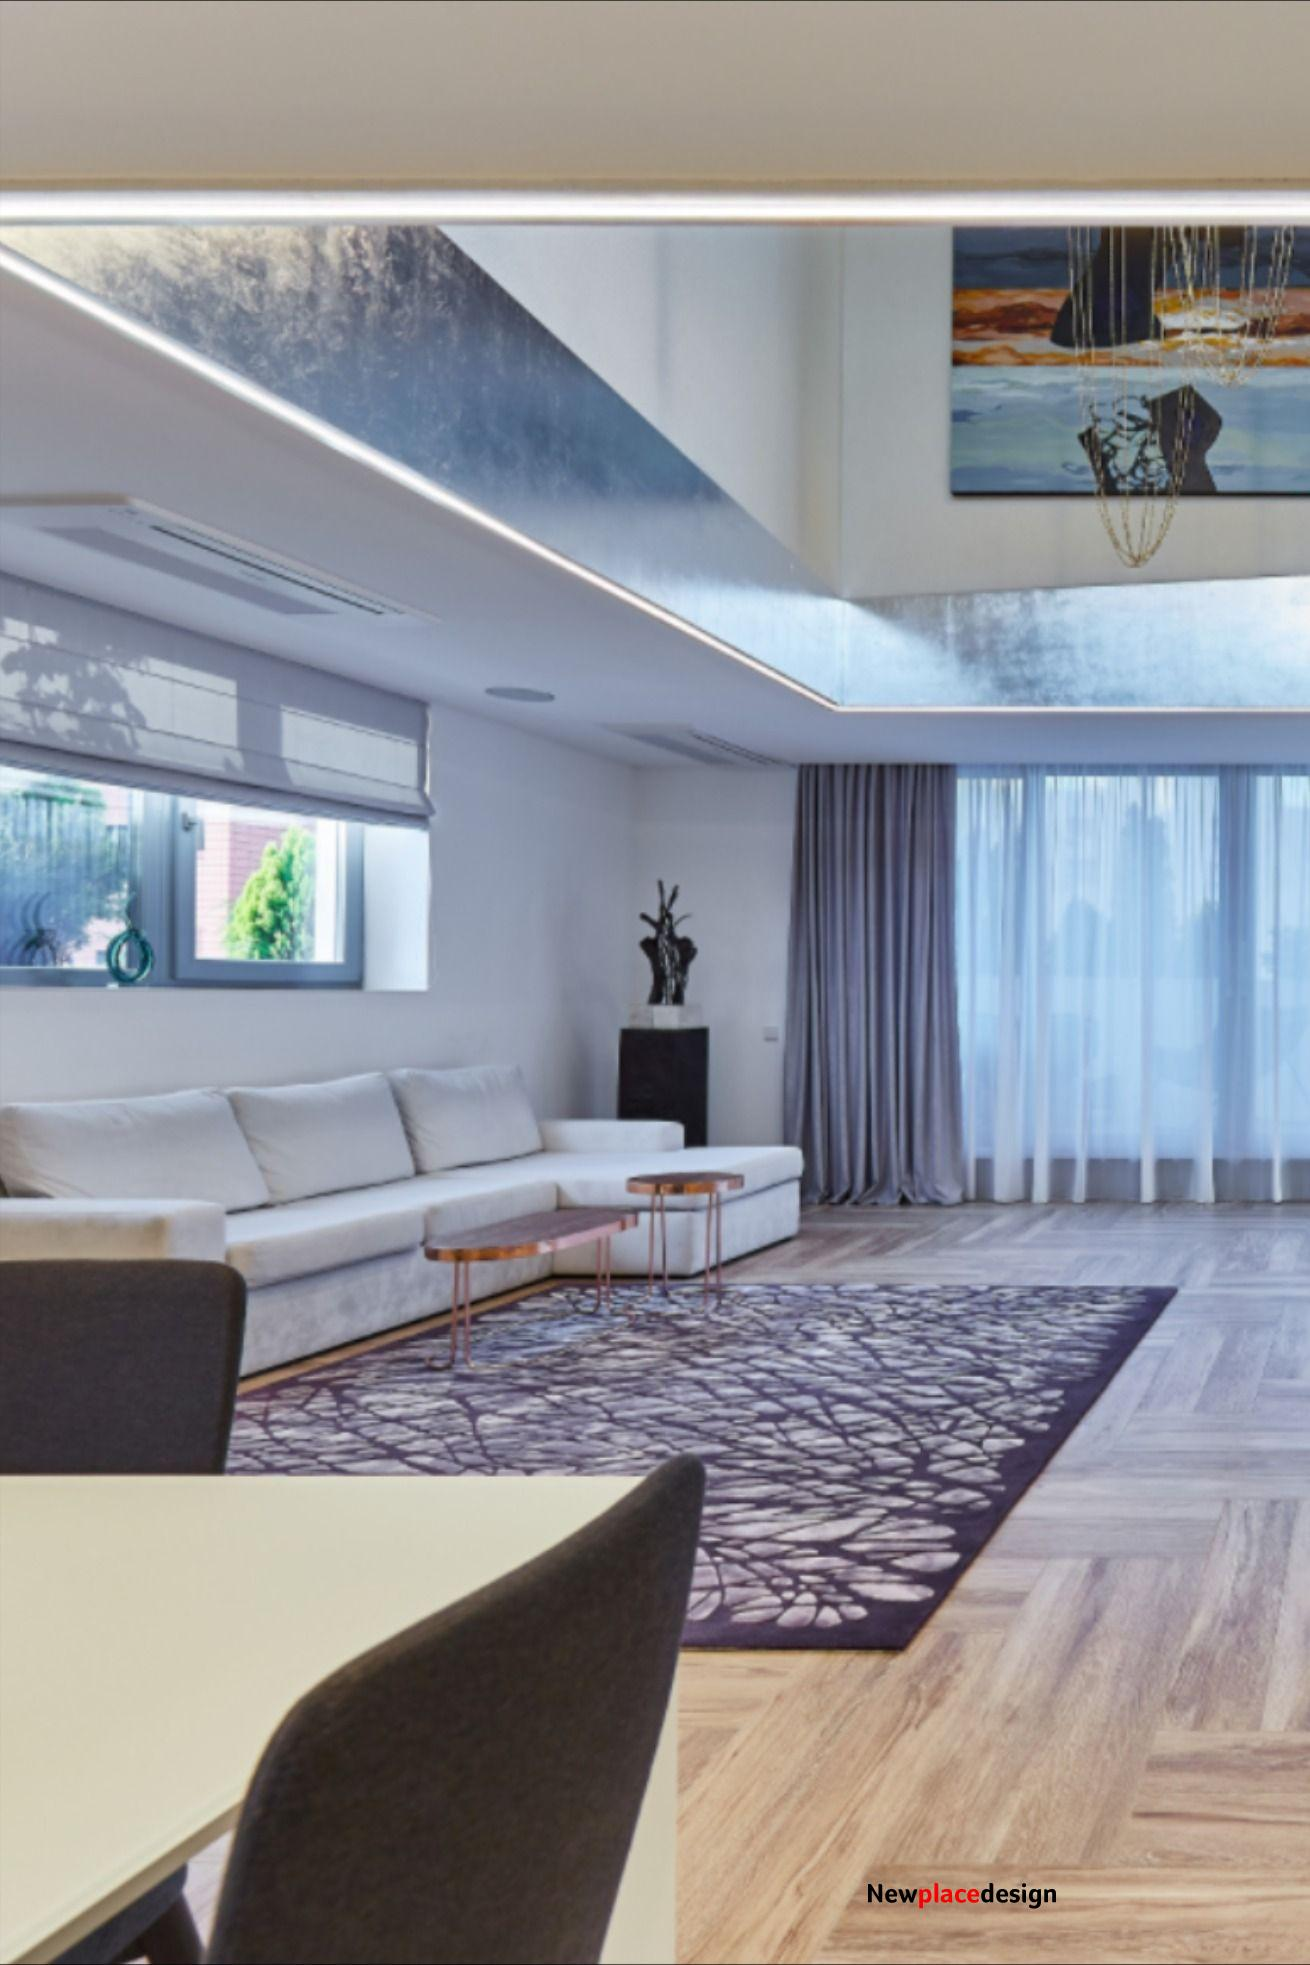 Inspiration You Deserve: 20 Interior Designers From Bucharest - Forty Management & Investments